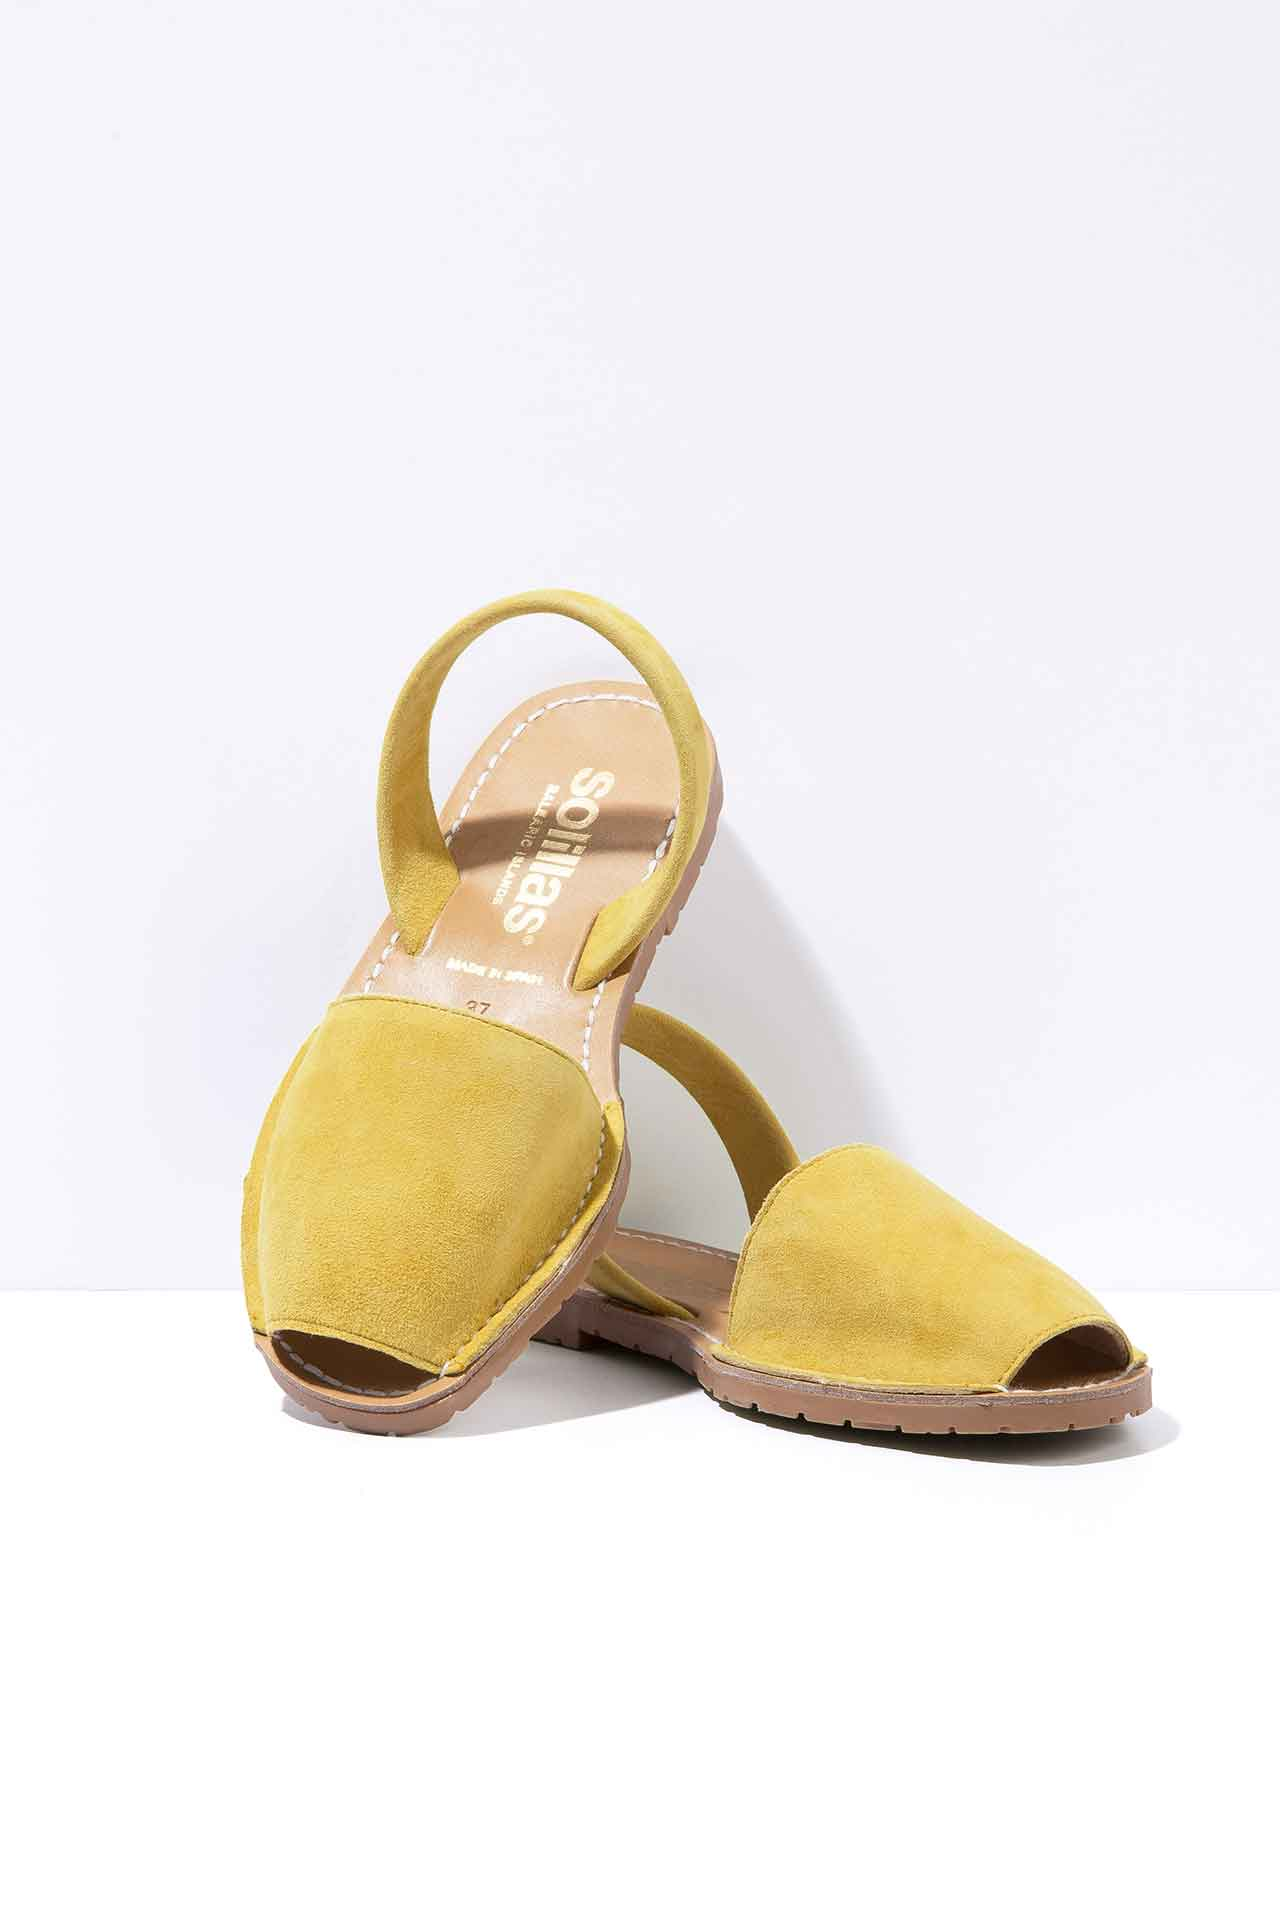 AMARILLO - Yellow Suede Menorcan sandals